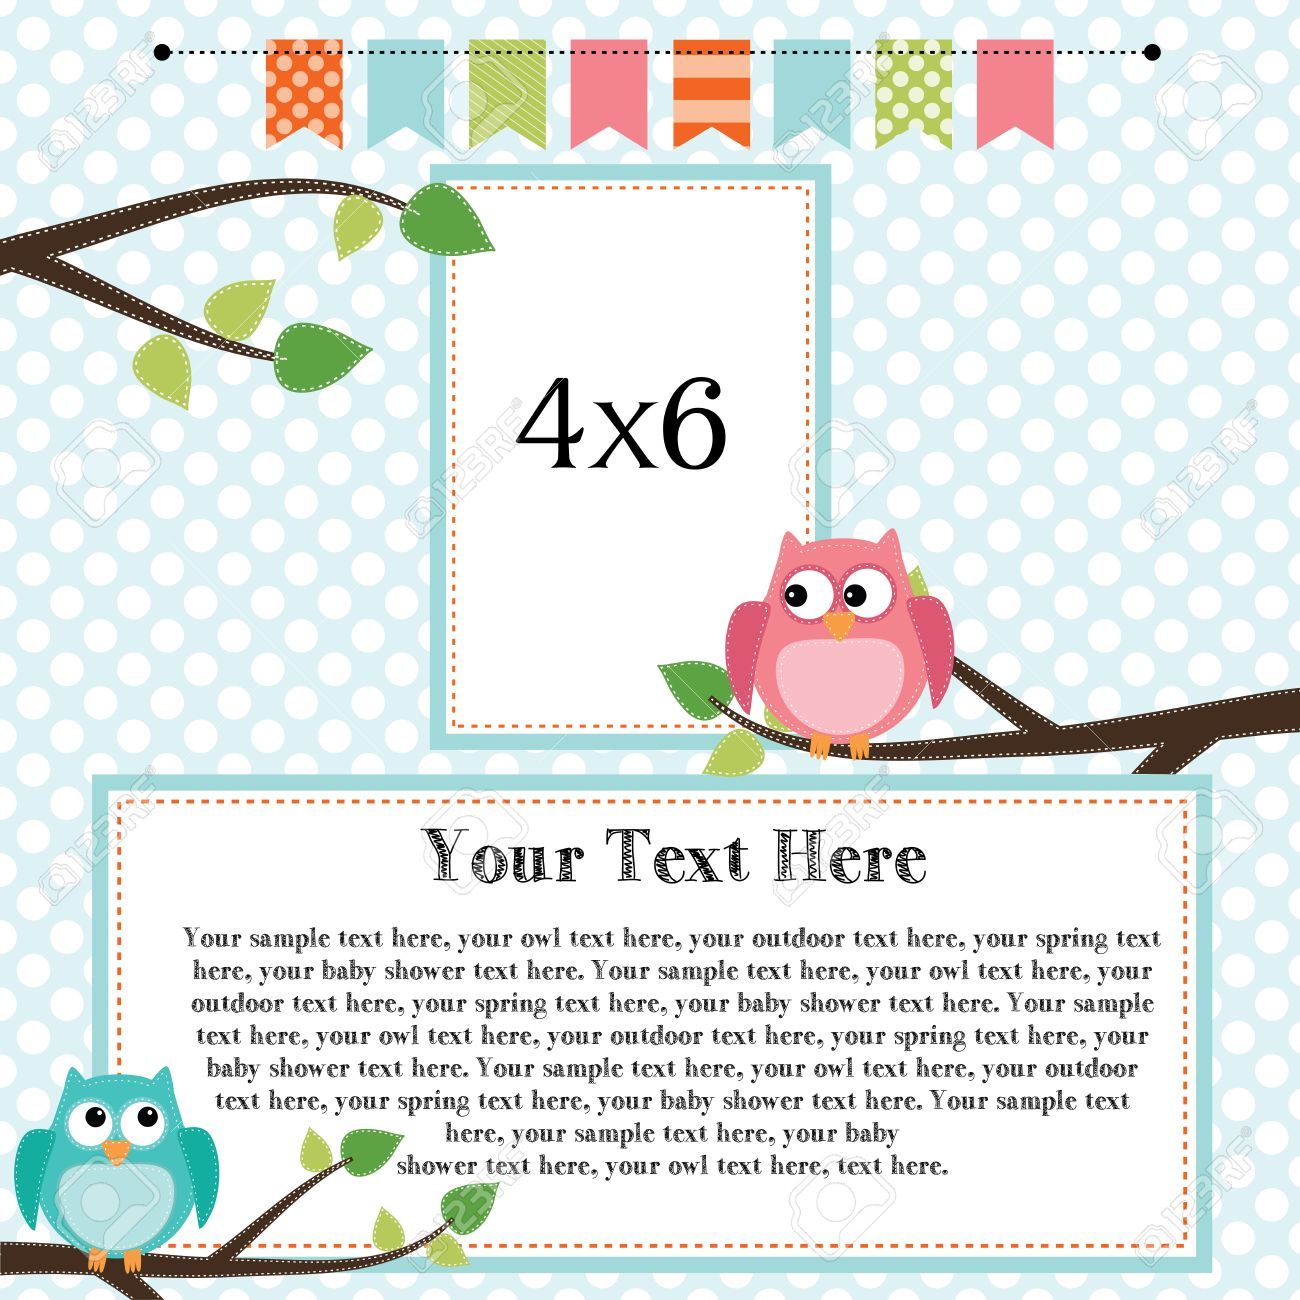 Comfortable 1.5 Inch Circle Template Huge 13 Birthday Invitation Templates Shaped 16 Birthday Invitation Templates 2 Binder Spine Template Old 2 Inch Button Template Soft2 Inch Circle Template Owl Scrapbooking Template With Banner Or Bunting And 4x6 Frames ..